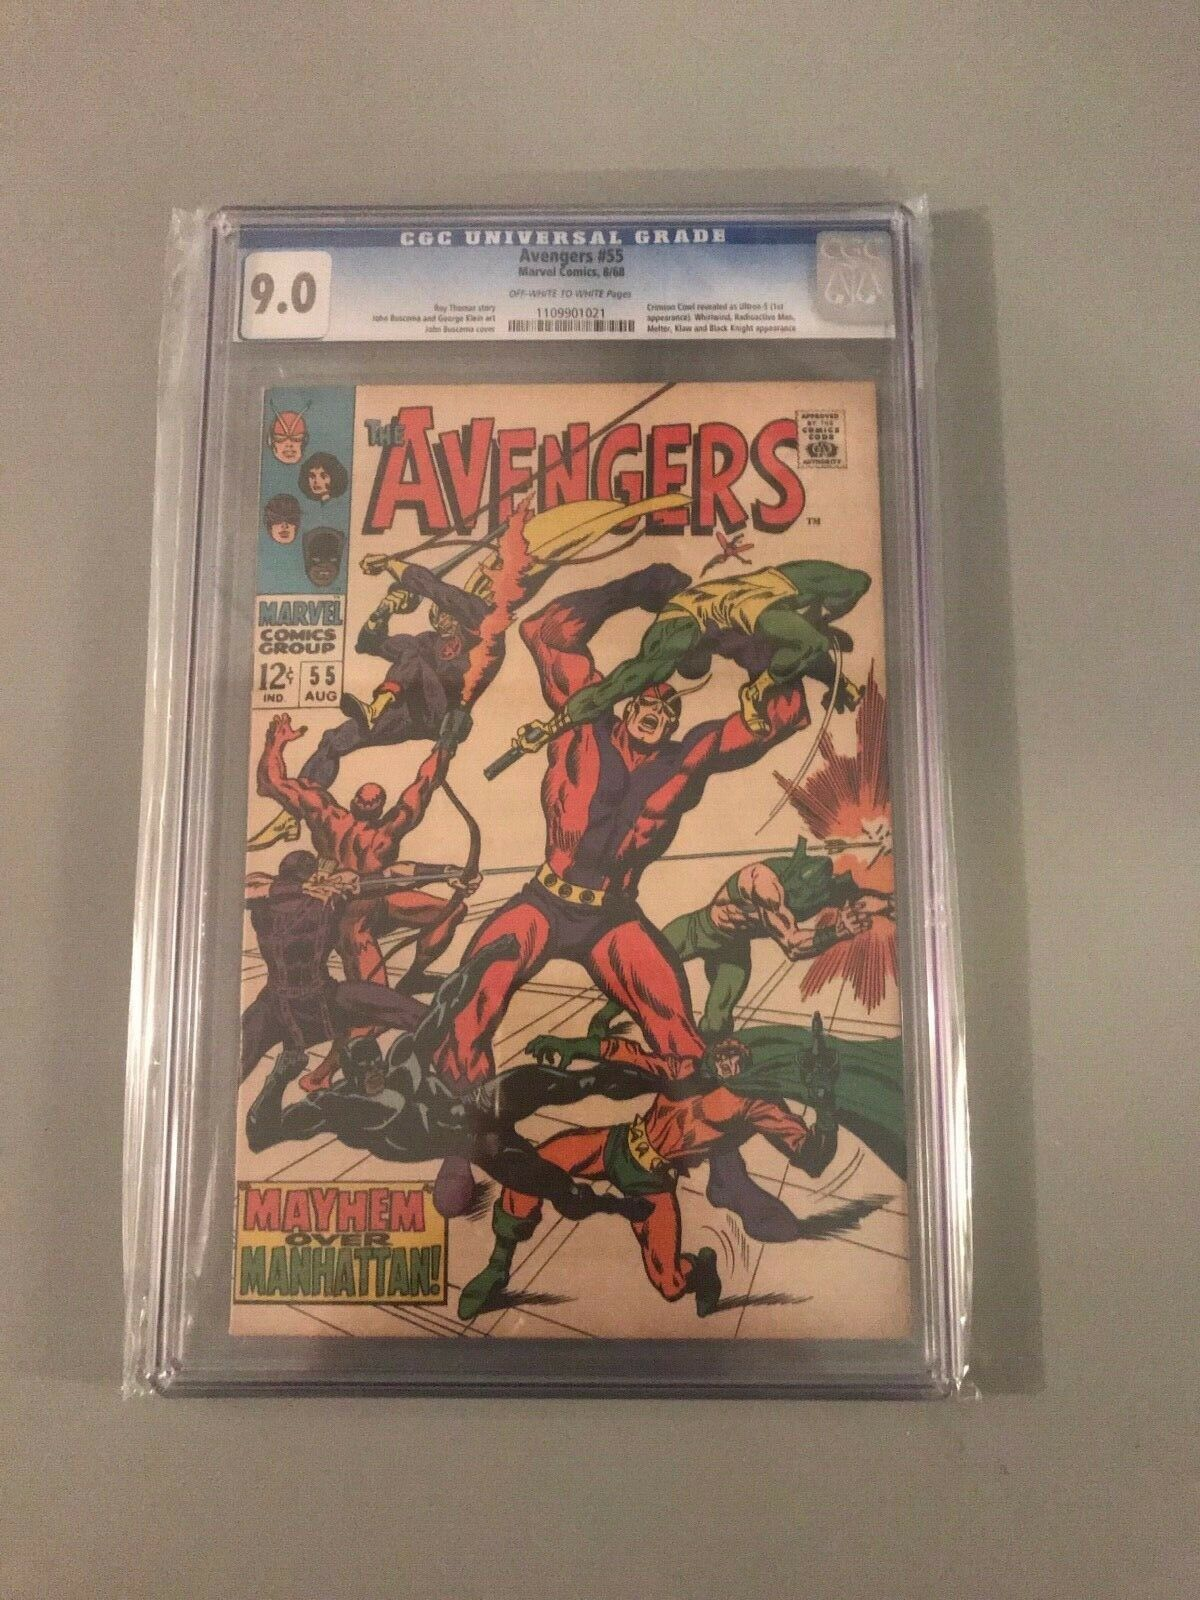 AVENGERS ISSUE 55 AUG 1968 |  CGC 9.0 VF/NM | 1ST APP OF ULTRON-5 | SILVER-AGE